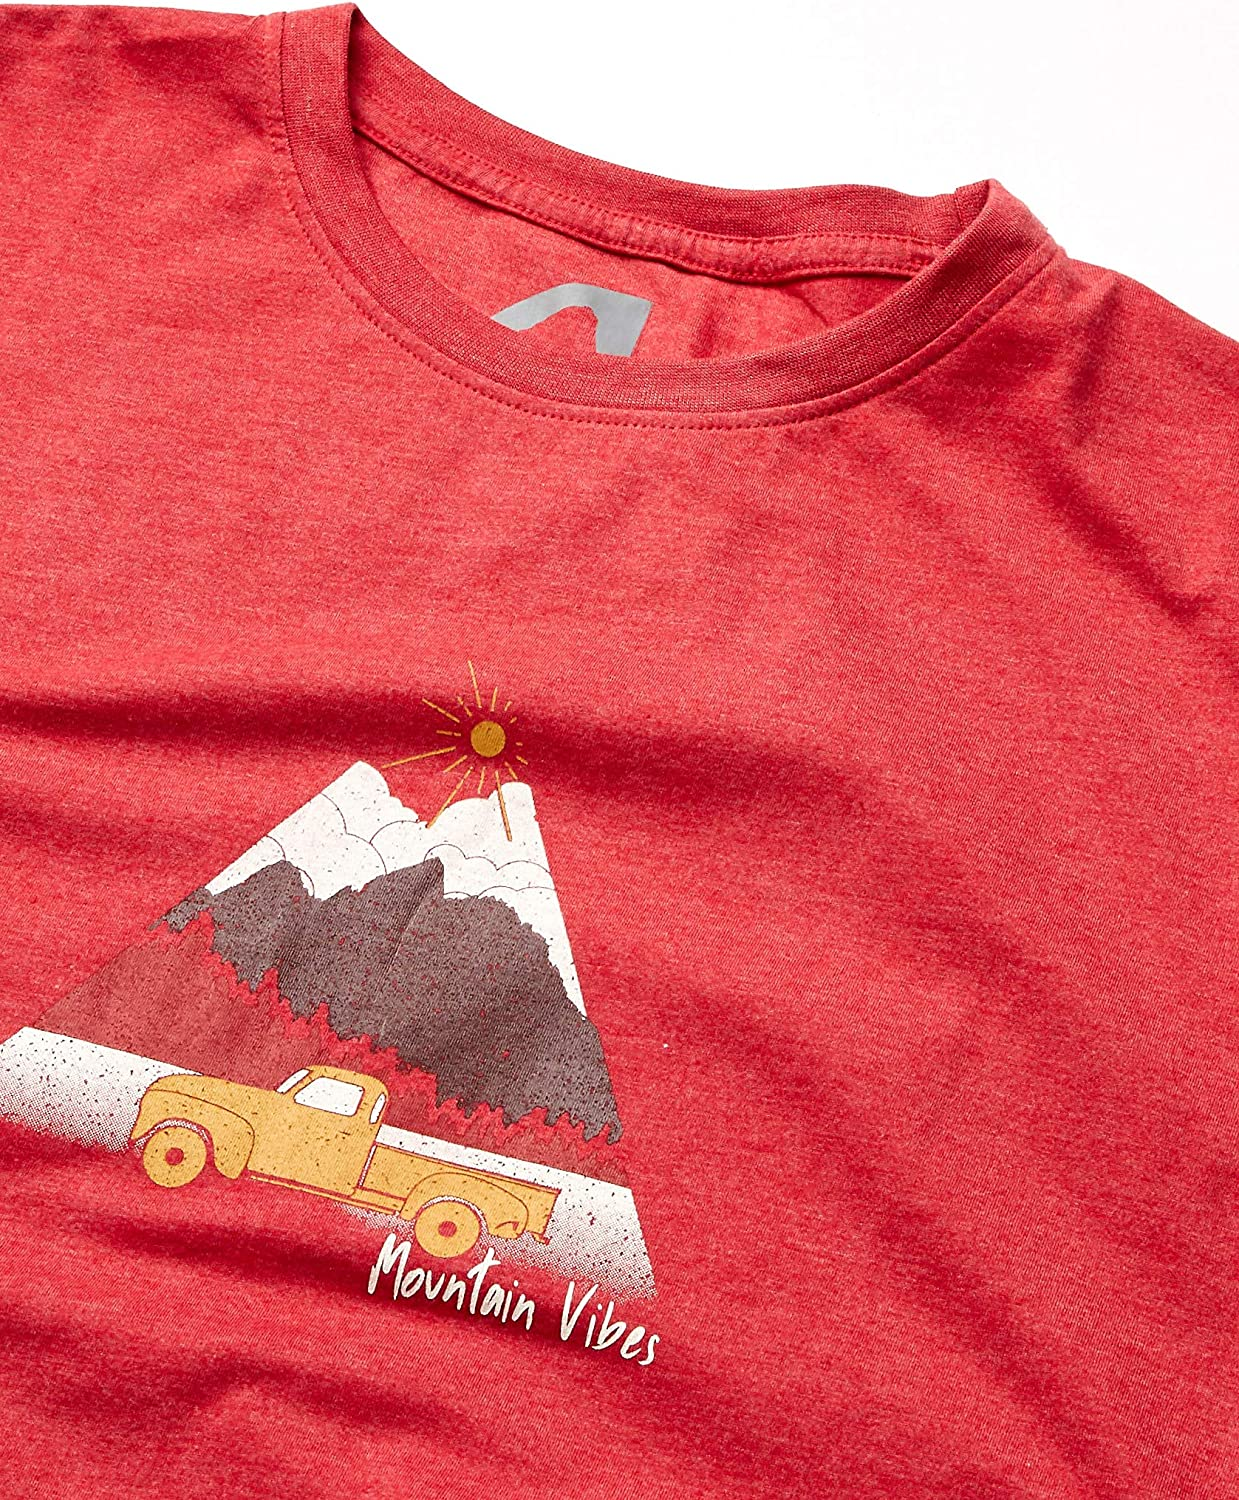 Organic Cotton Recycled Material Tee XX-Large Red Heather Mountain Khakis Mens Retro T-Shirt